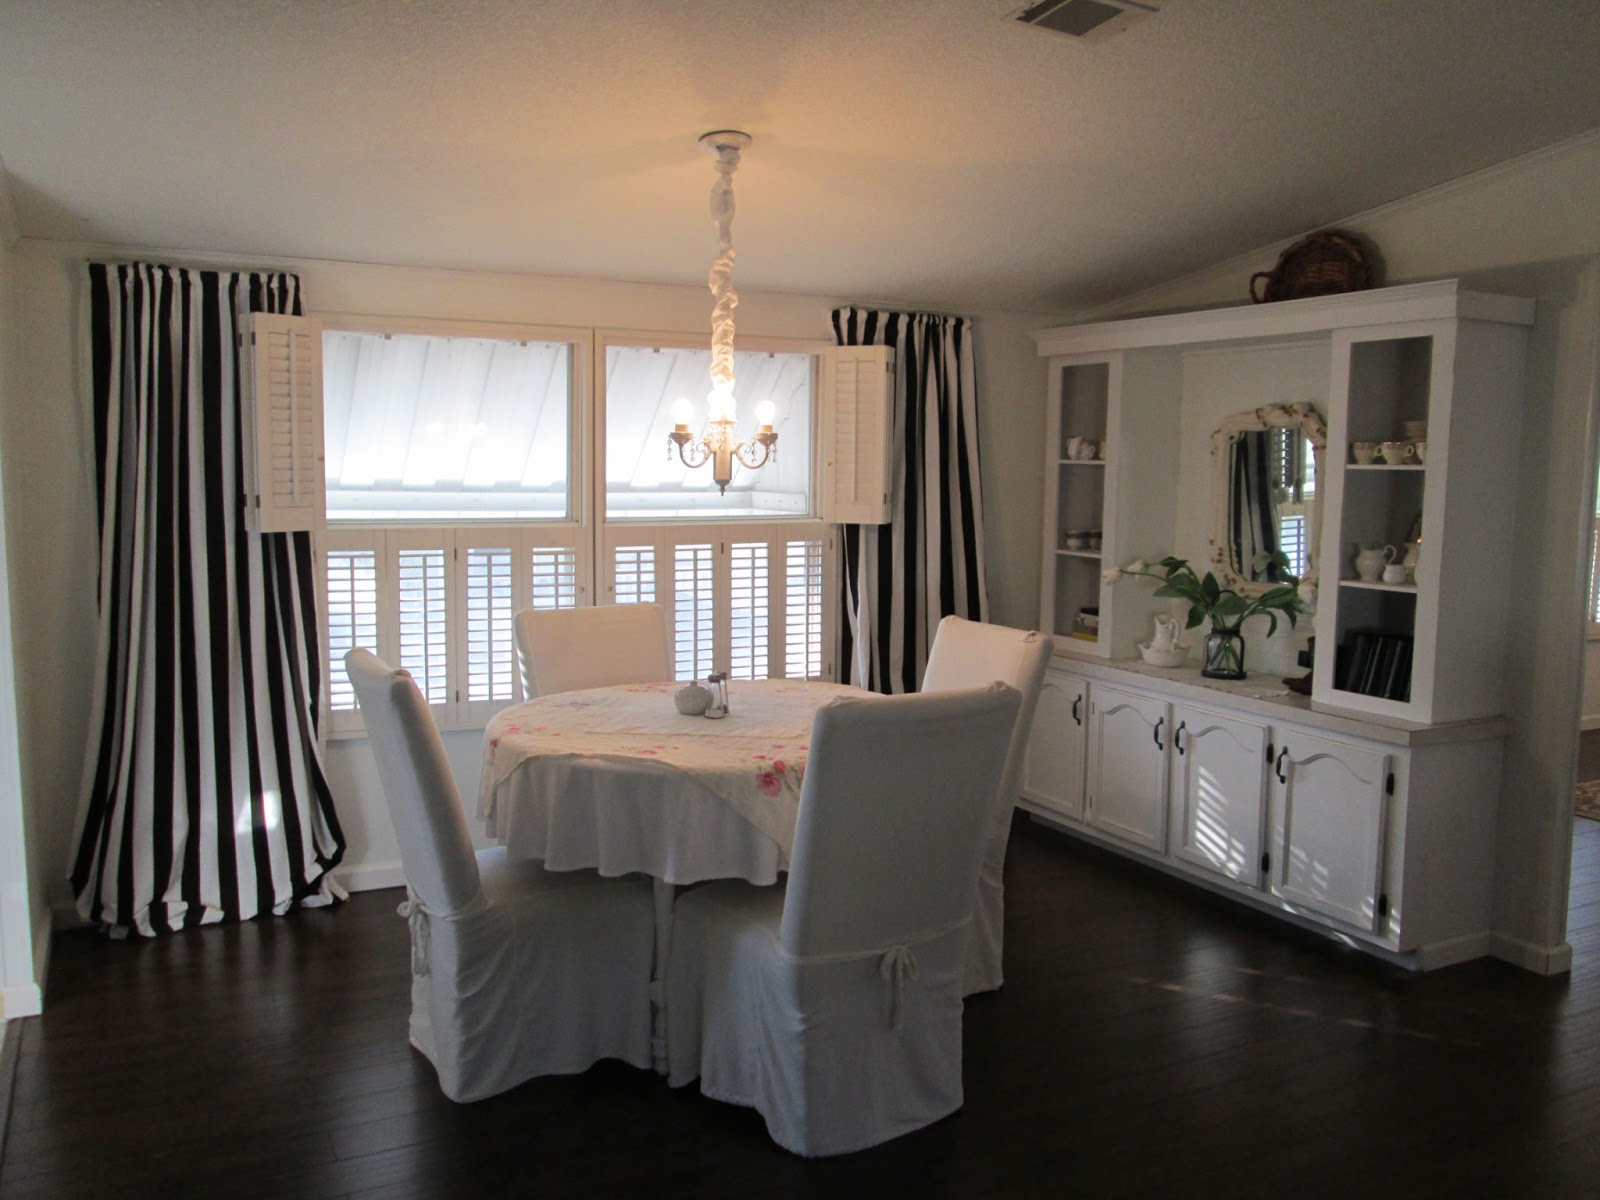 exceptional mobile home makeover Part - 10: exceptional mobile home makeover pictures gallery